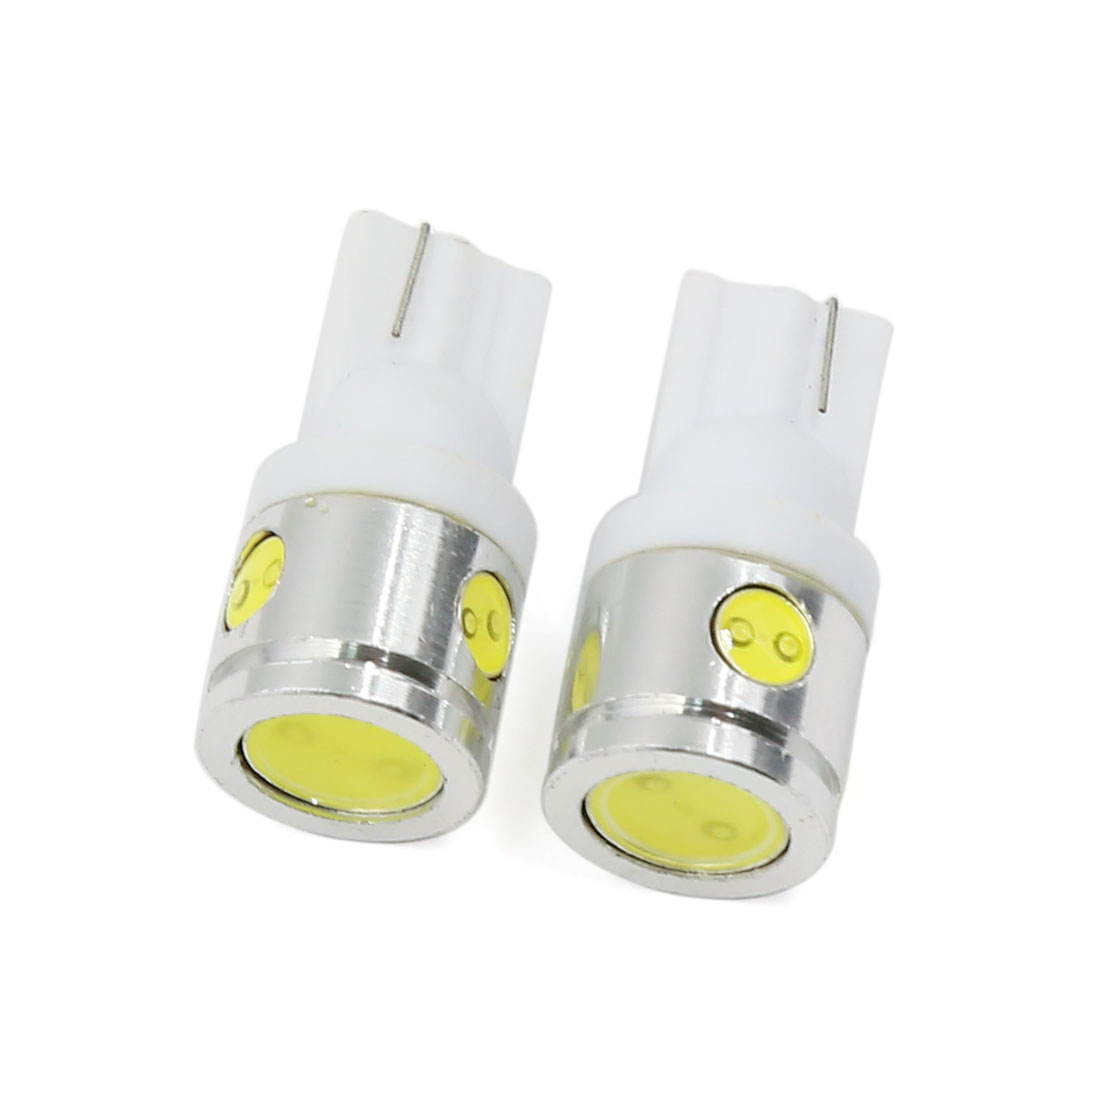 2 Pcs T10 W5W High Power 2.5W White LED Backup Reverse Lights Bulb 192 921